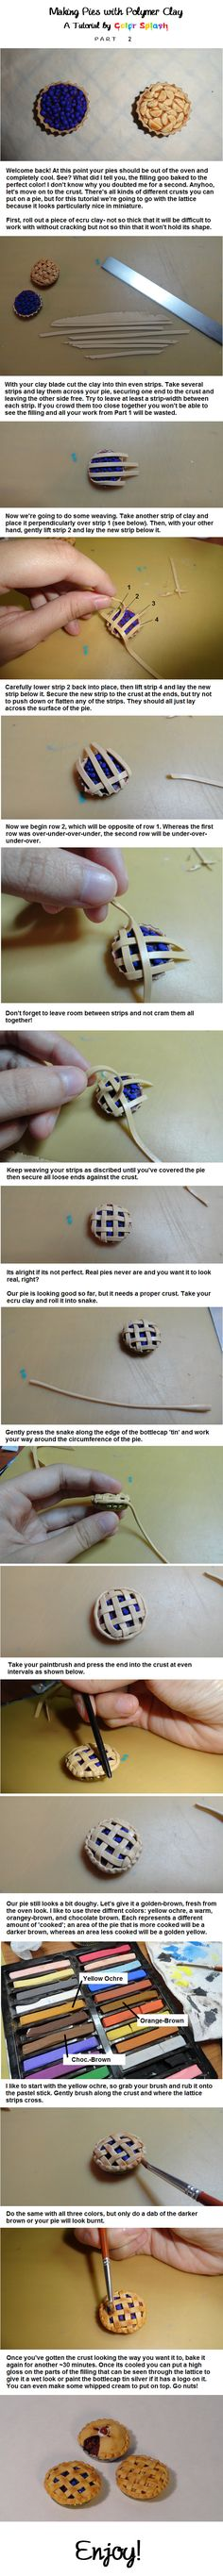 Polymer Clay Pie Tutorial PART 2 by Colour-Splashes.deviantart.com on @DeviantArt